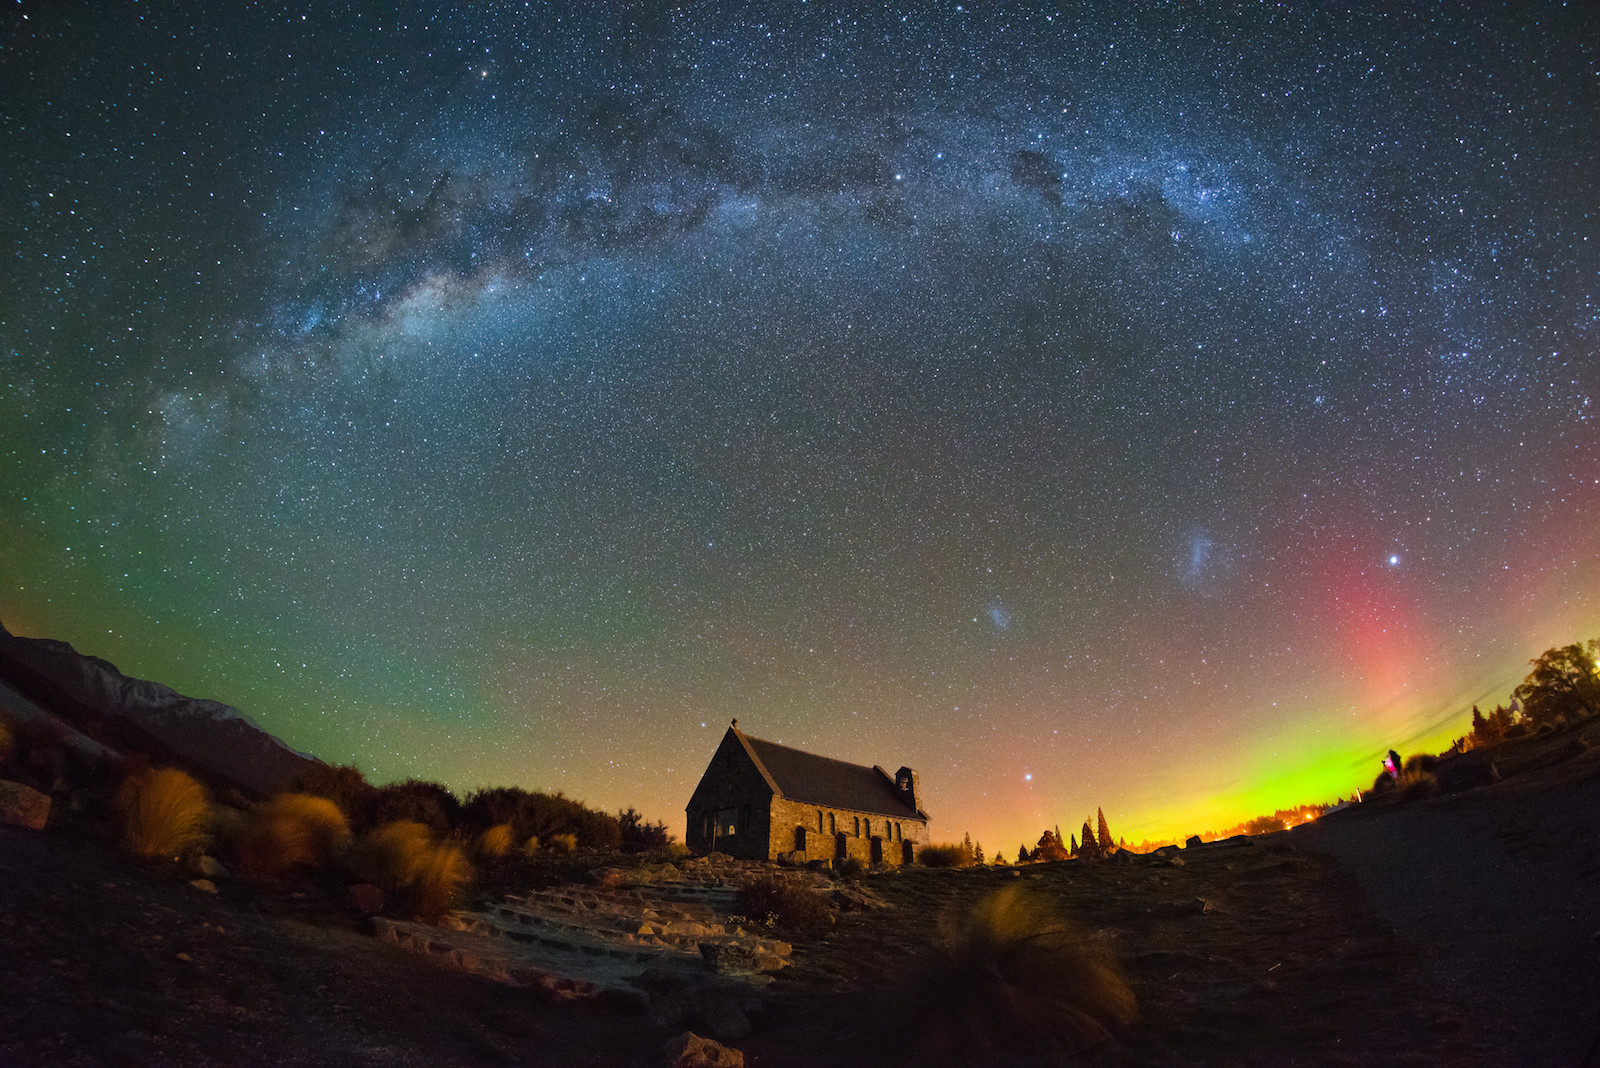 This is a picture Southern Light (Aurora Australis) at church of the good shepherd Mackenzie Country, New Zealand. Above the church there is visible Milky Way (our galaxy) and two Magellanic Clouds (or Nubeculae Magellani).